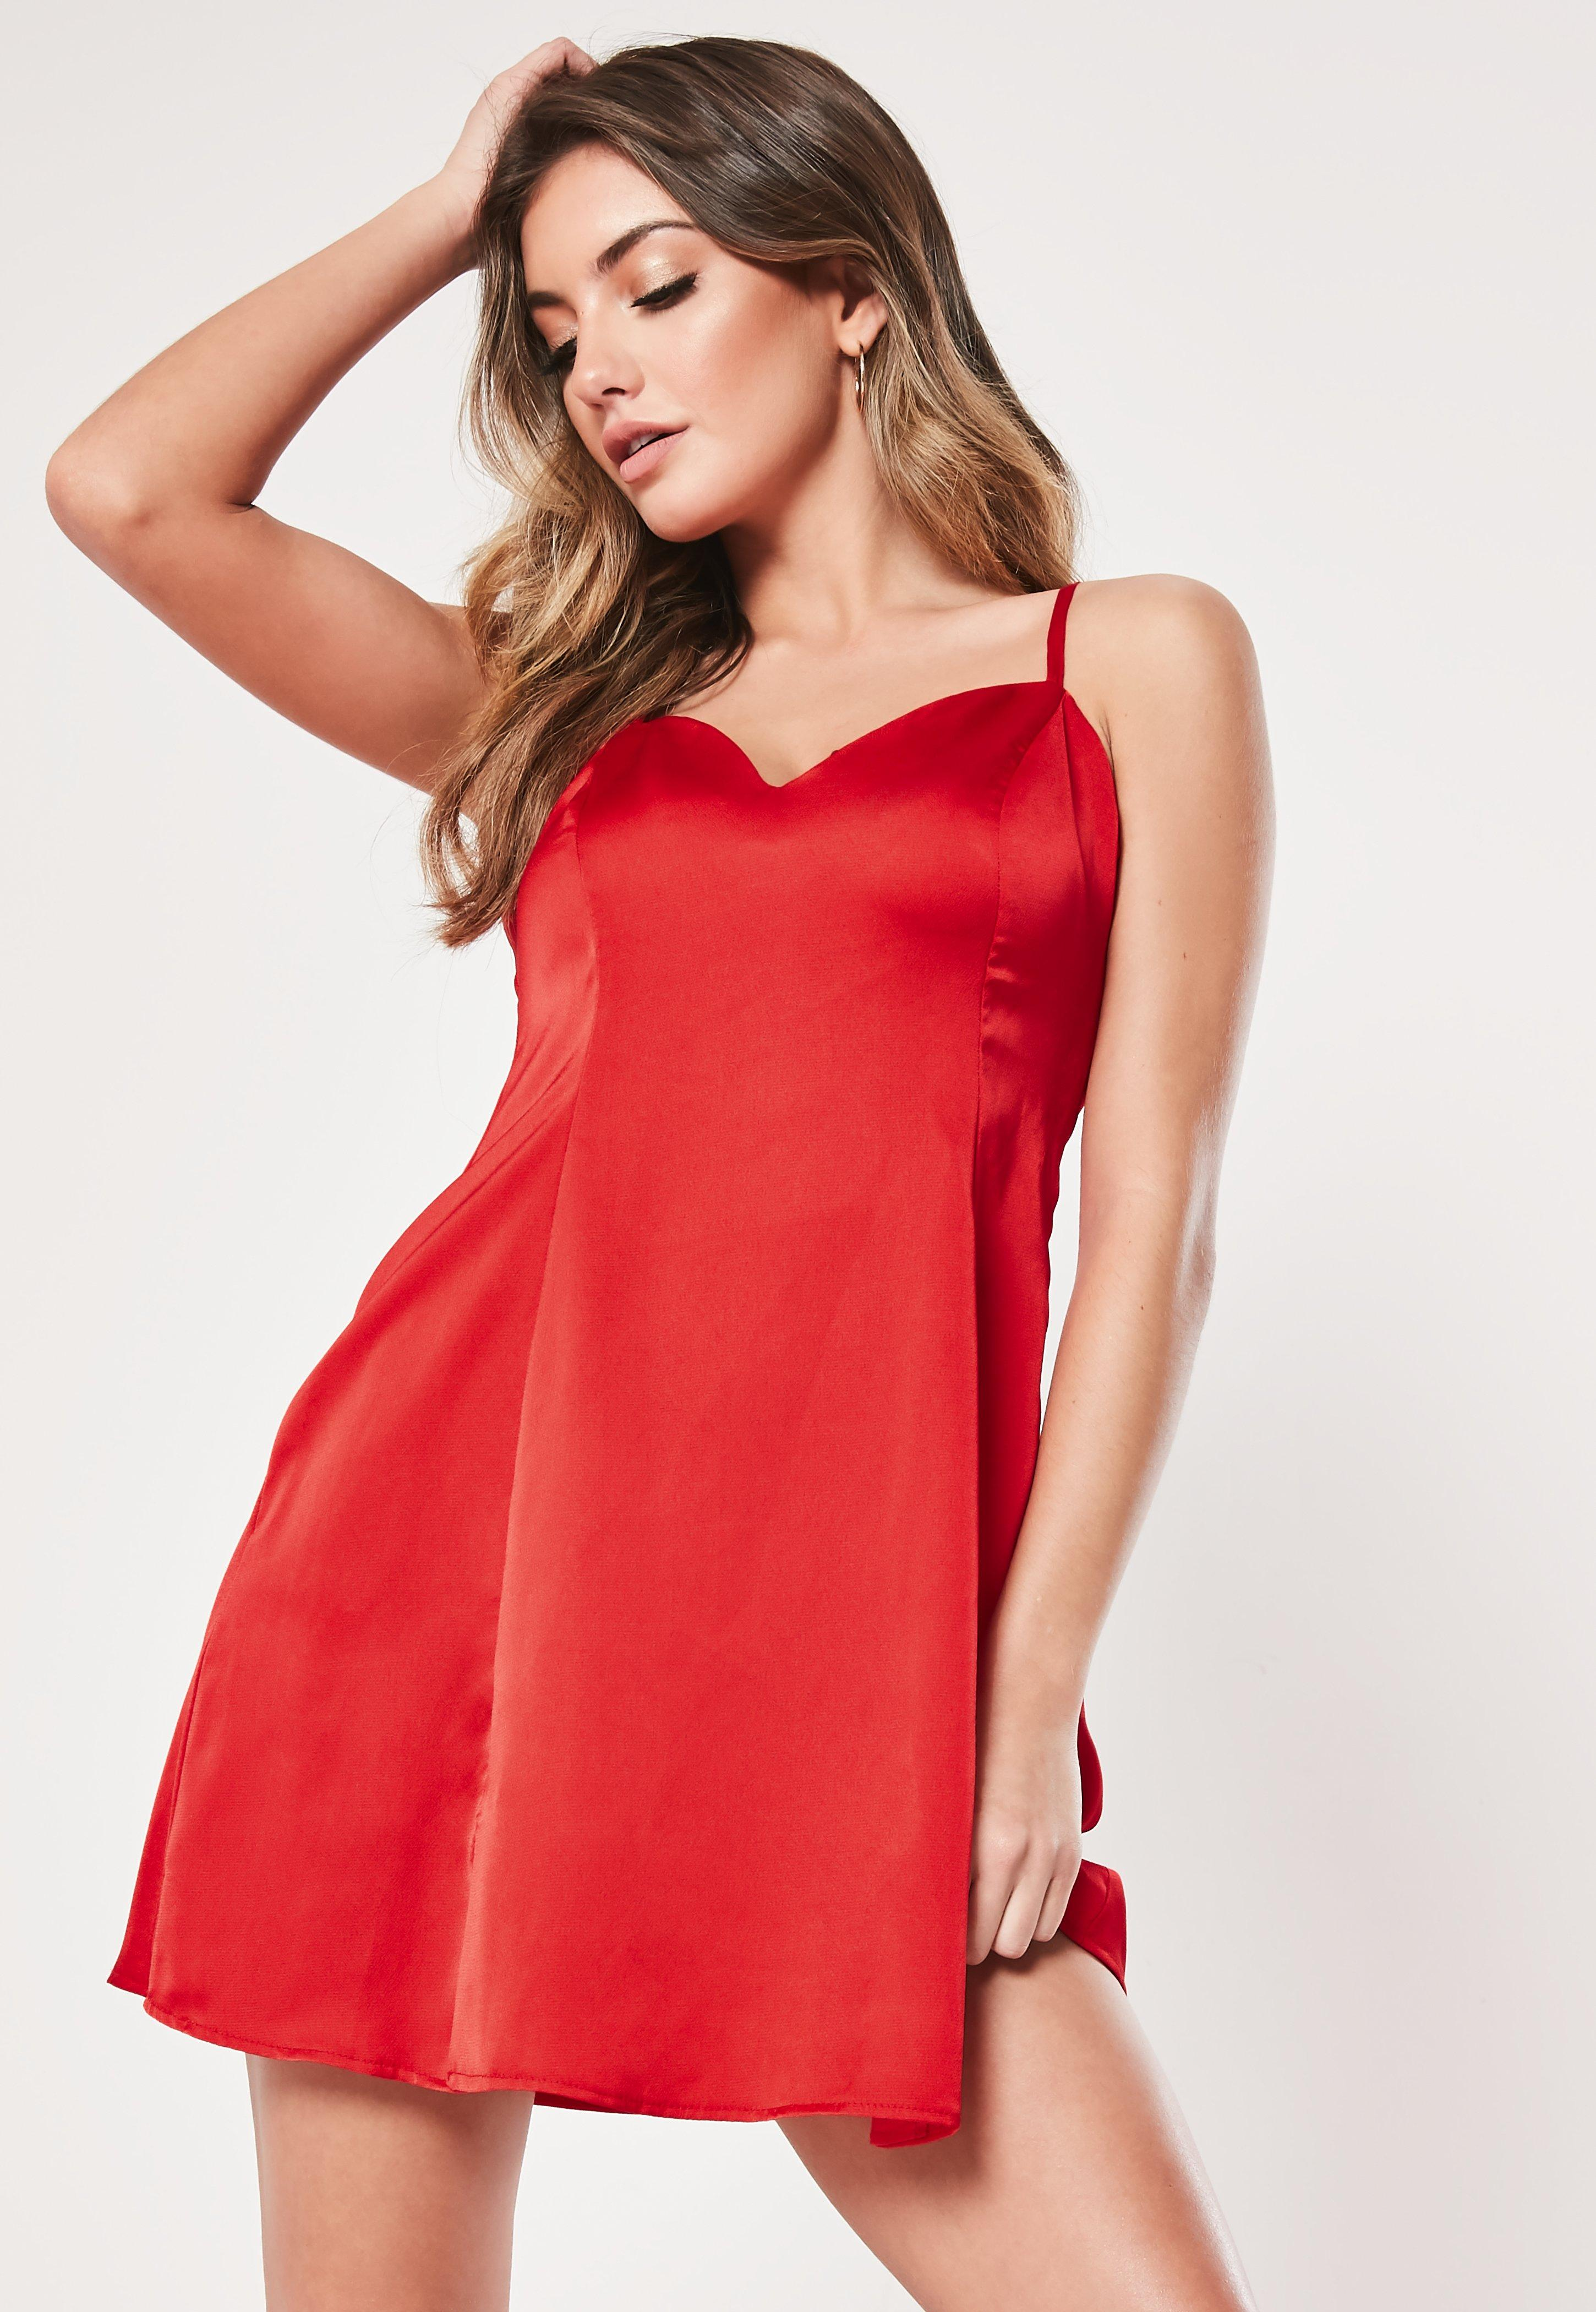 f0dfd1d56c Valentines Day Dresses   Outfits - Missguided